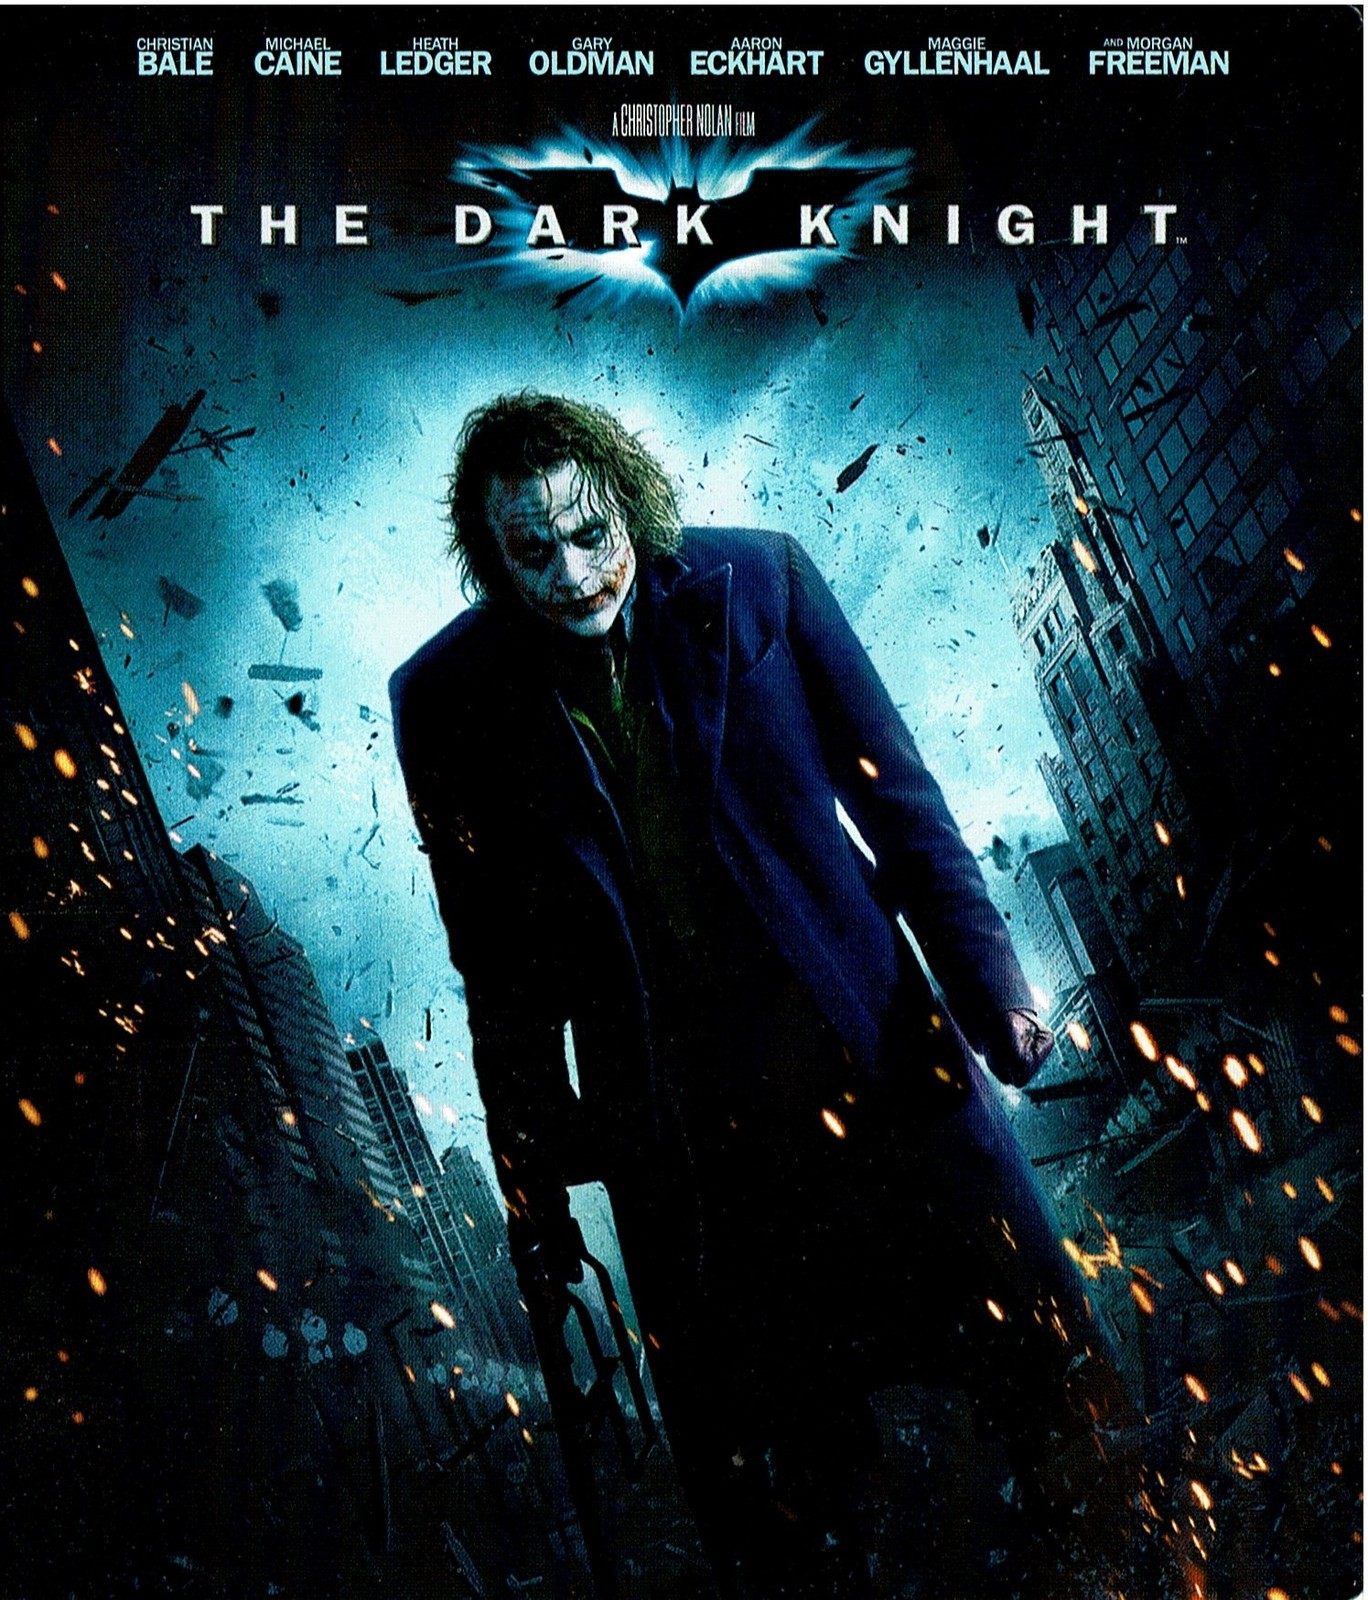 The Dark Knight  (2008) Blu-ray, 1080p, Special Edition (3 Disc in case)